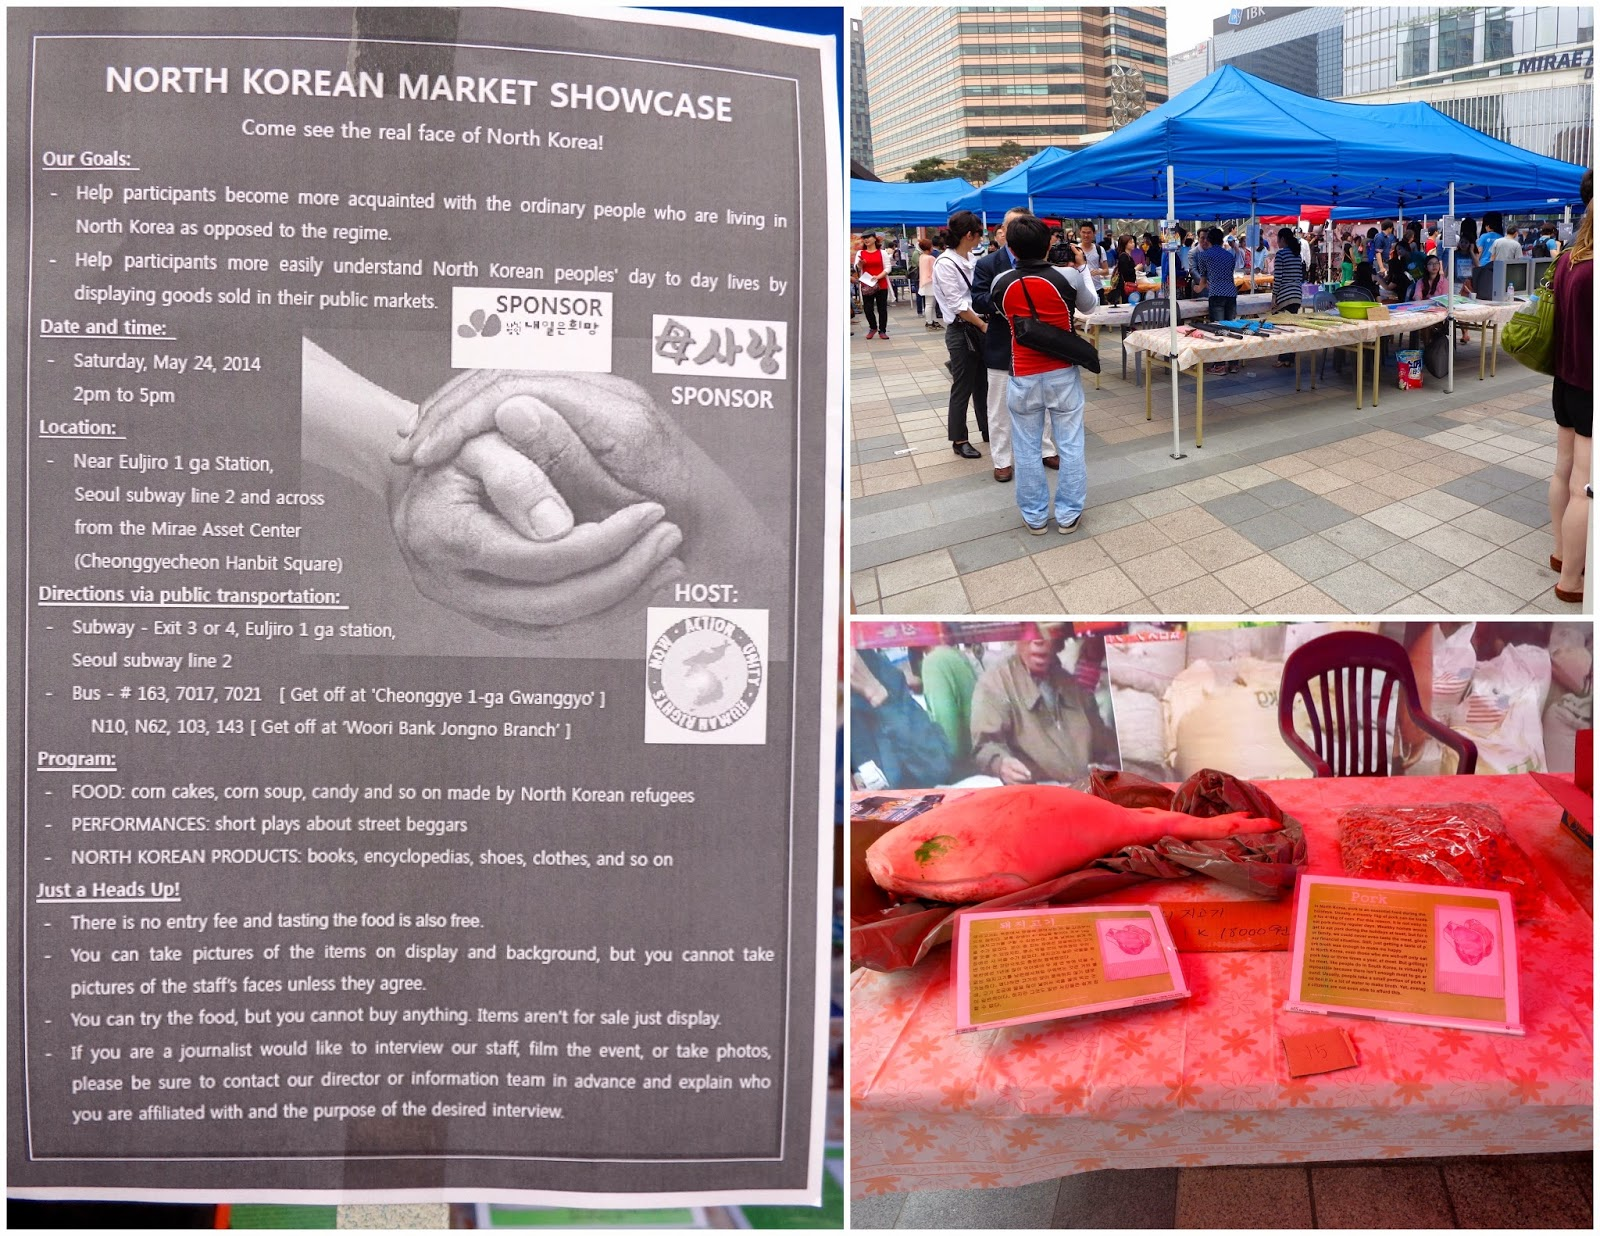 North Korean Market Showcase